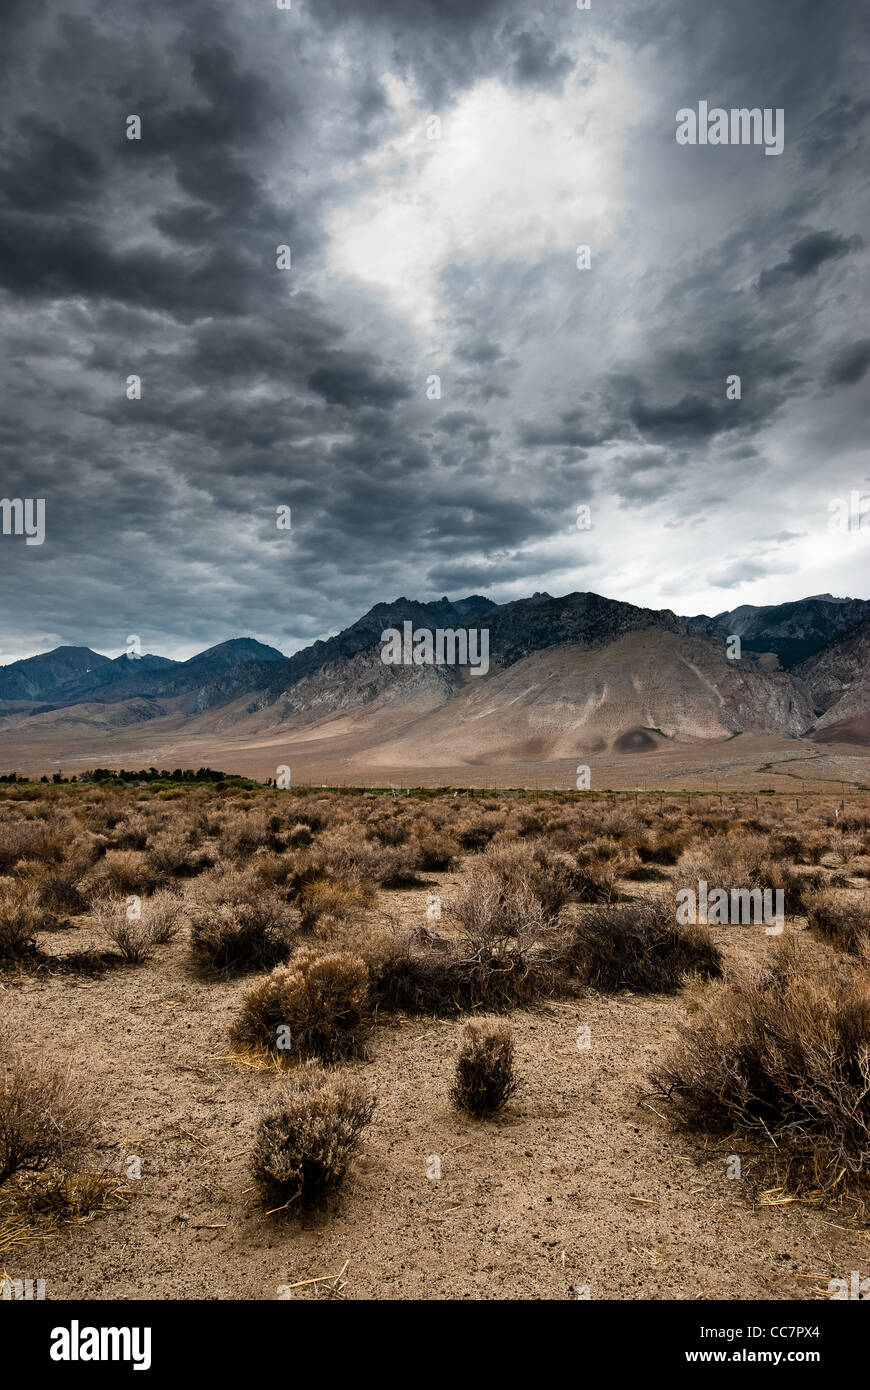 dark clouds in death valley national park, nevada, usa - Stock Image